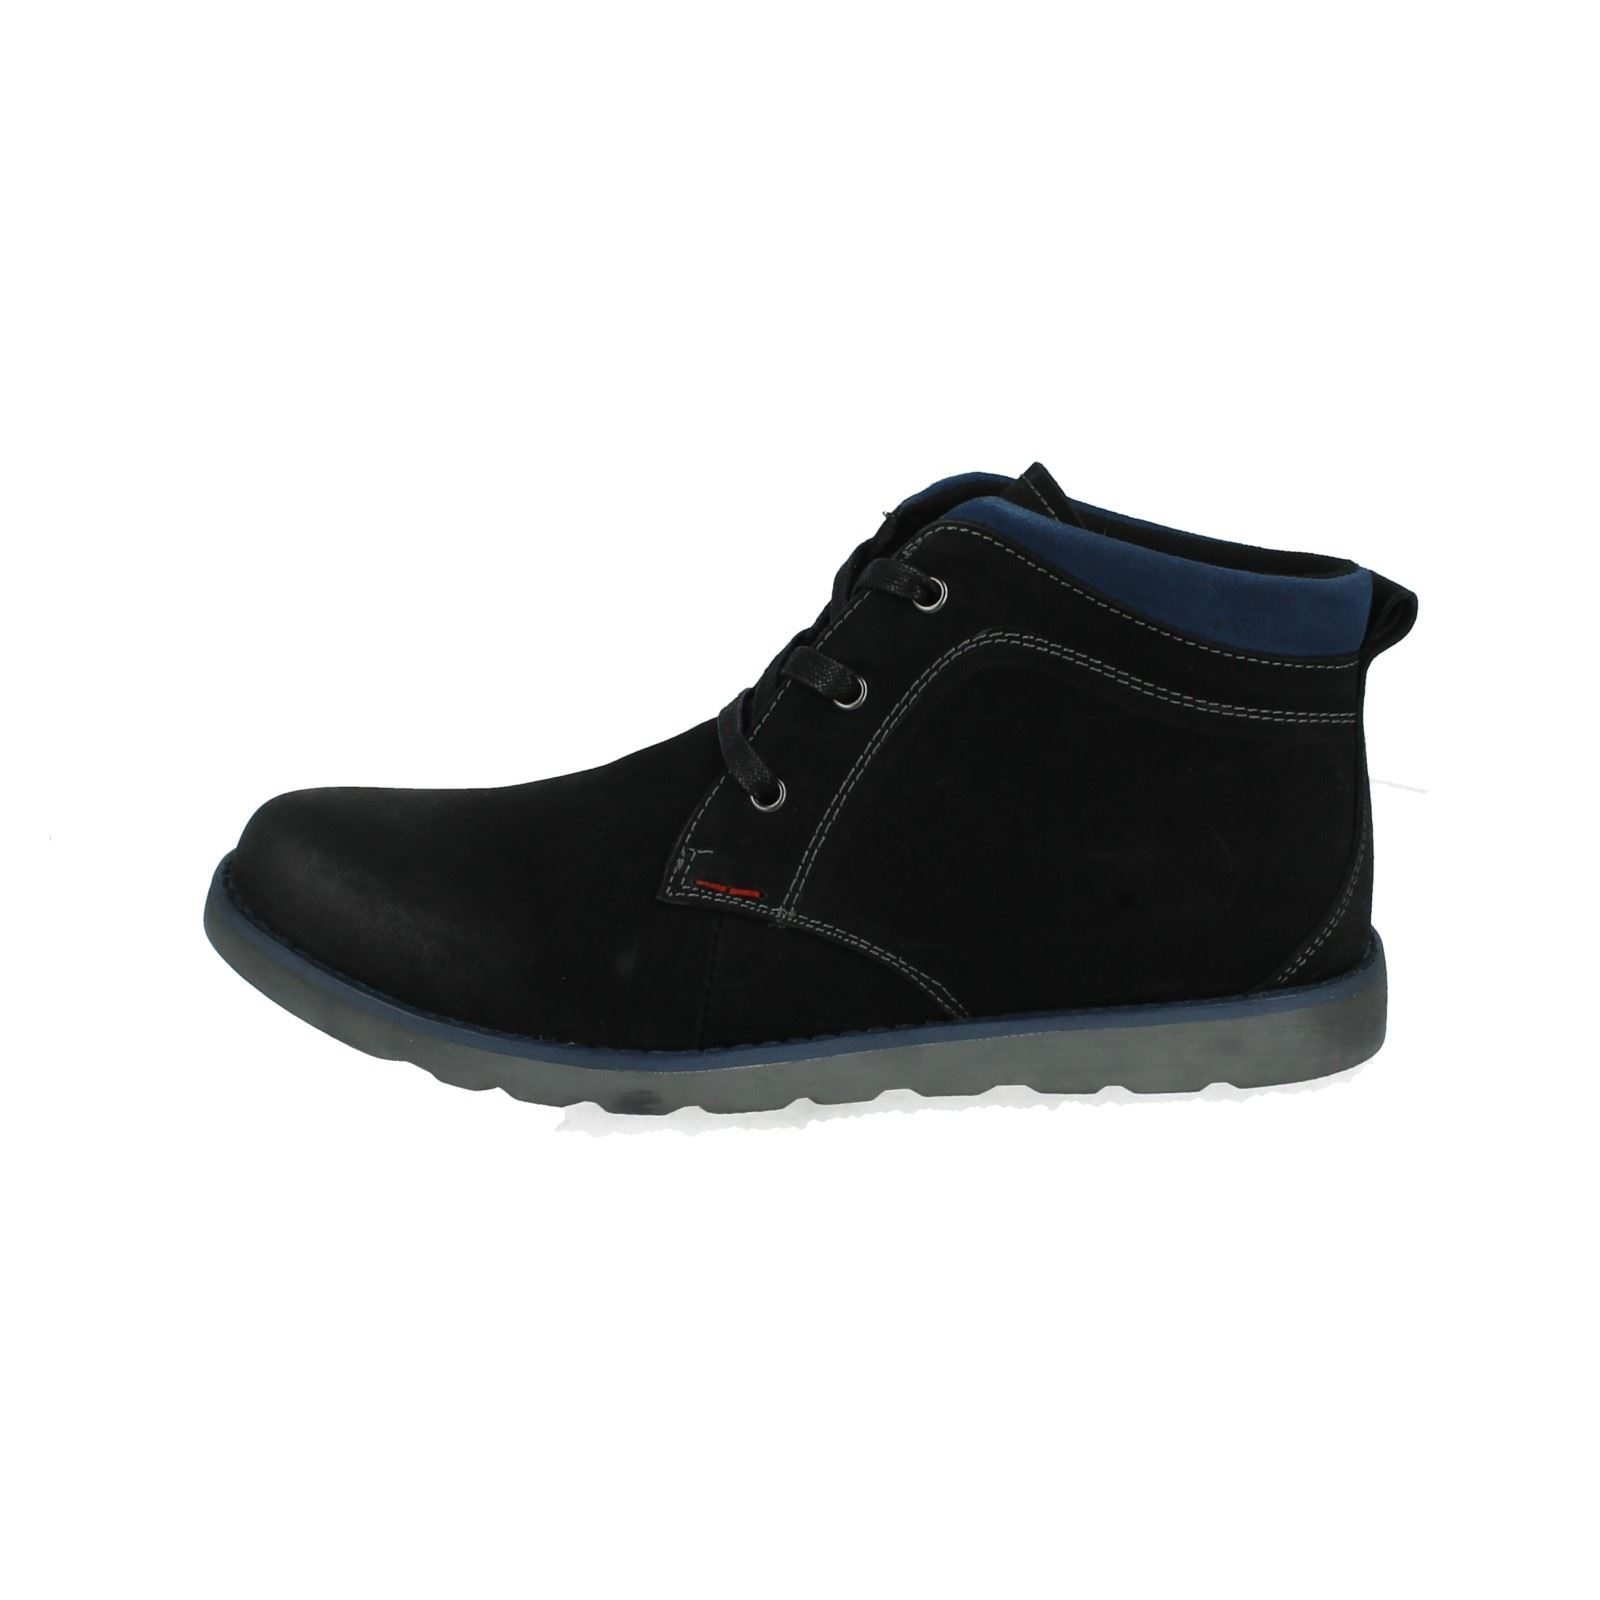 Uomo Boots Thomas Blunt Formal Leather Boots Uomo The Style - A3056 52648e